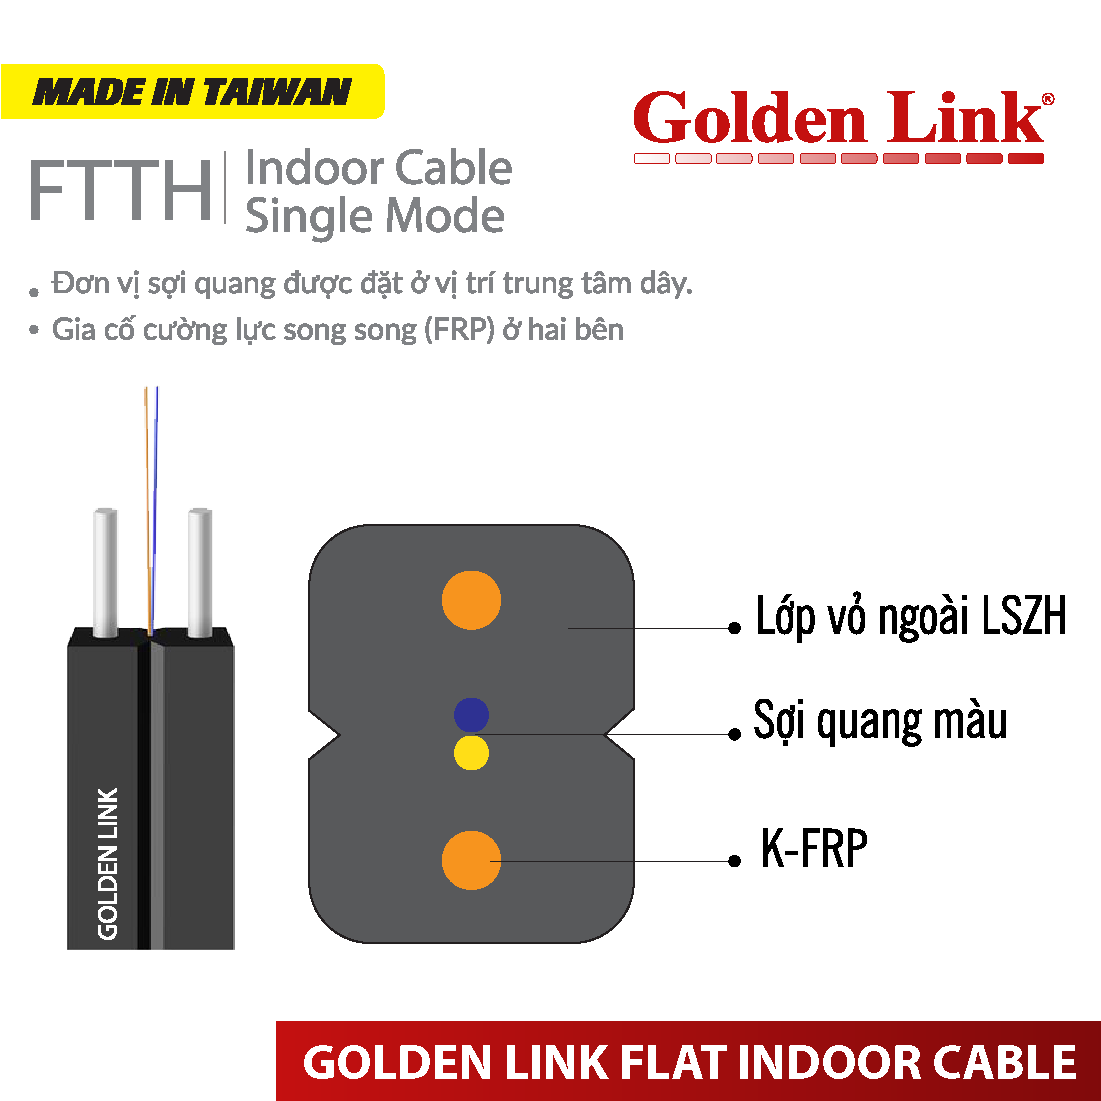 FTTH Indoor Cable Single Mode